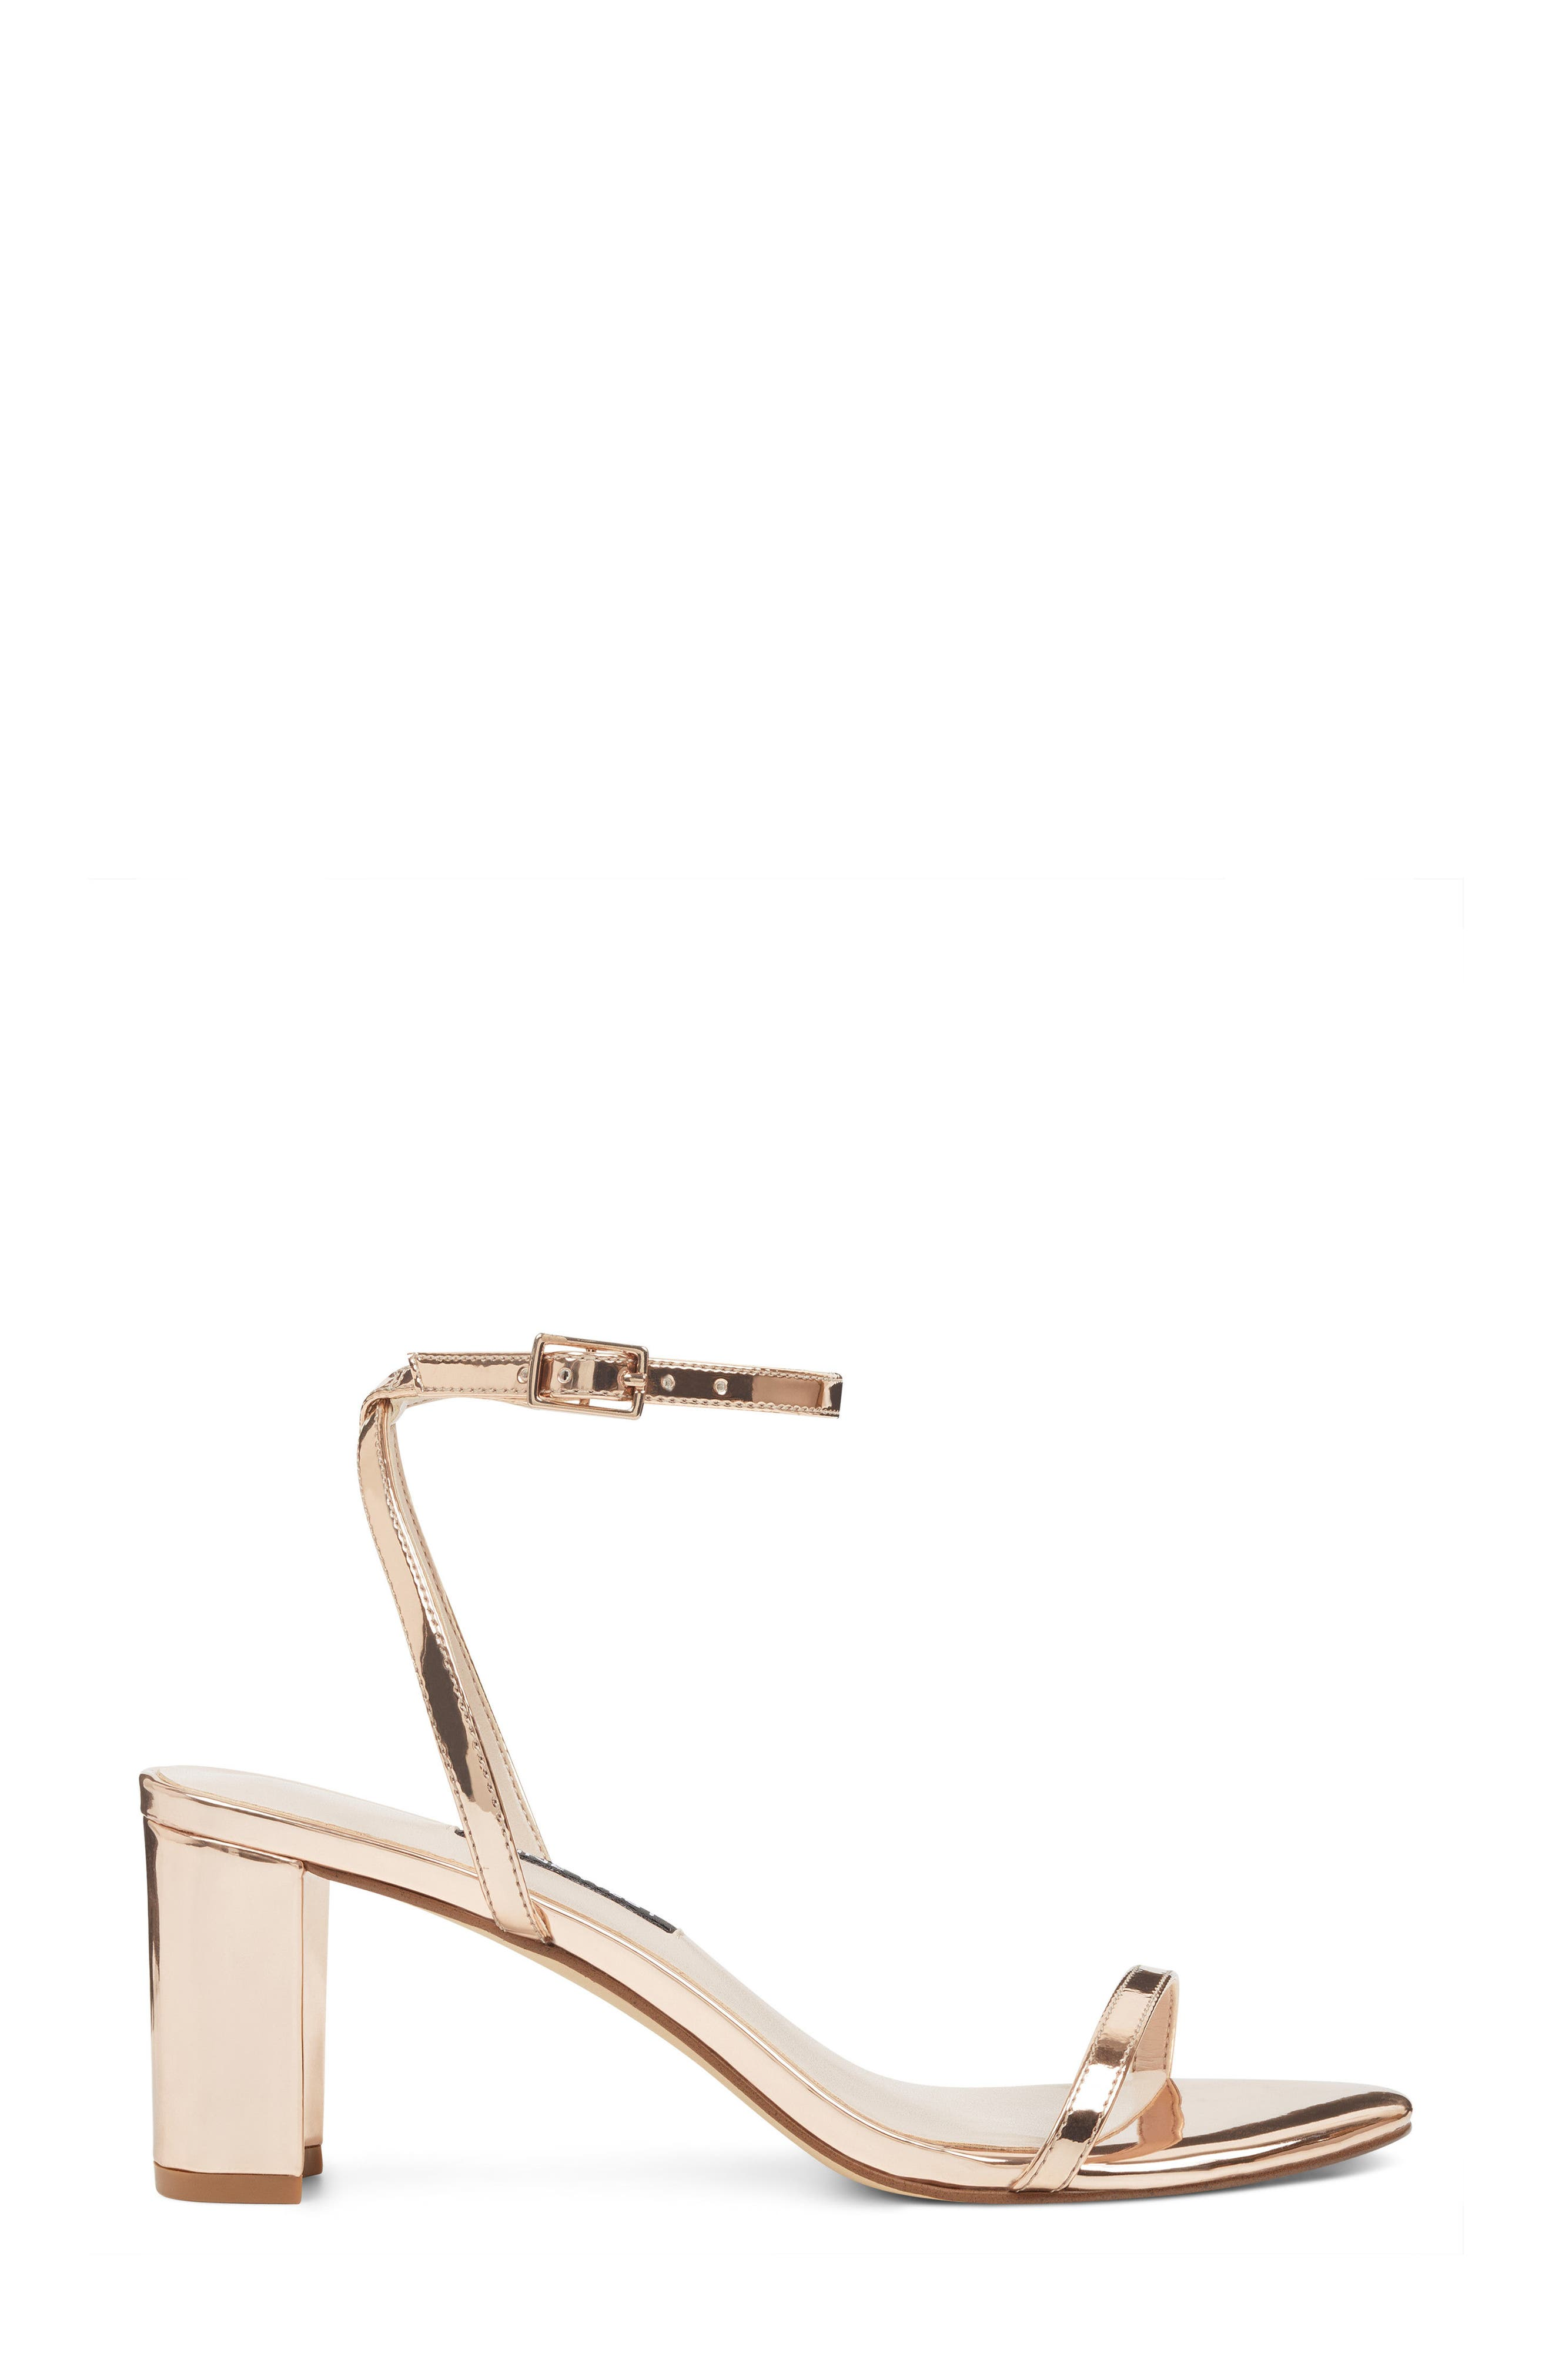 Provein Strappy Sandal,                             Alternate thumbnail 3, color,                             Pink Faux Leather